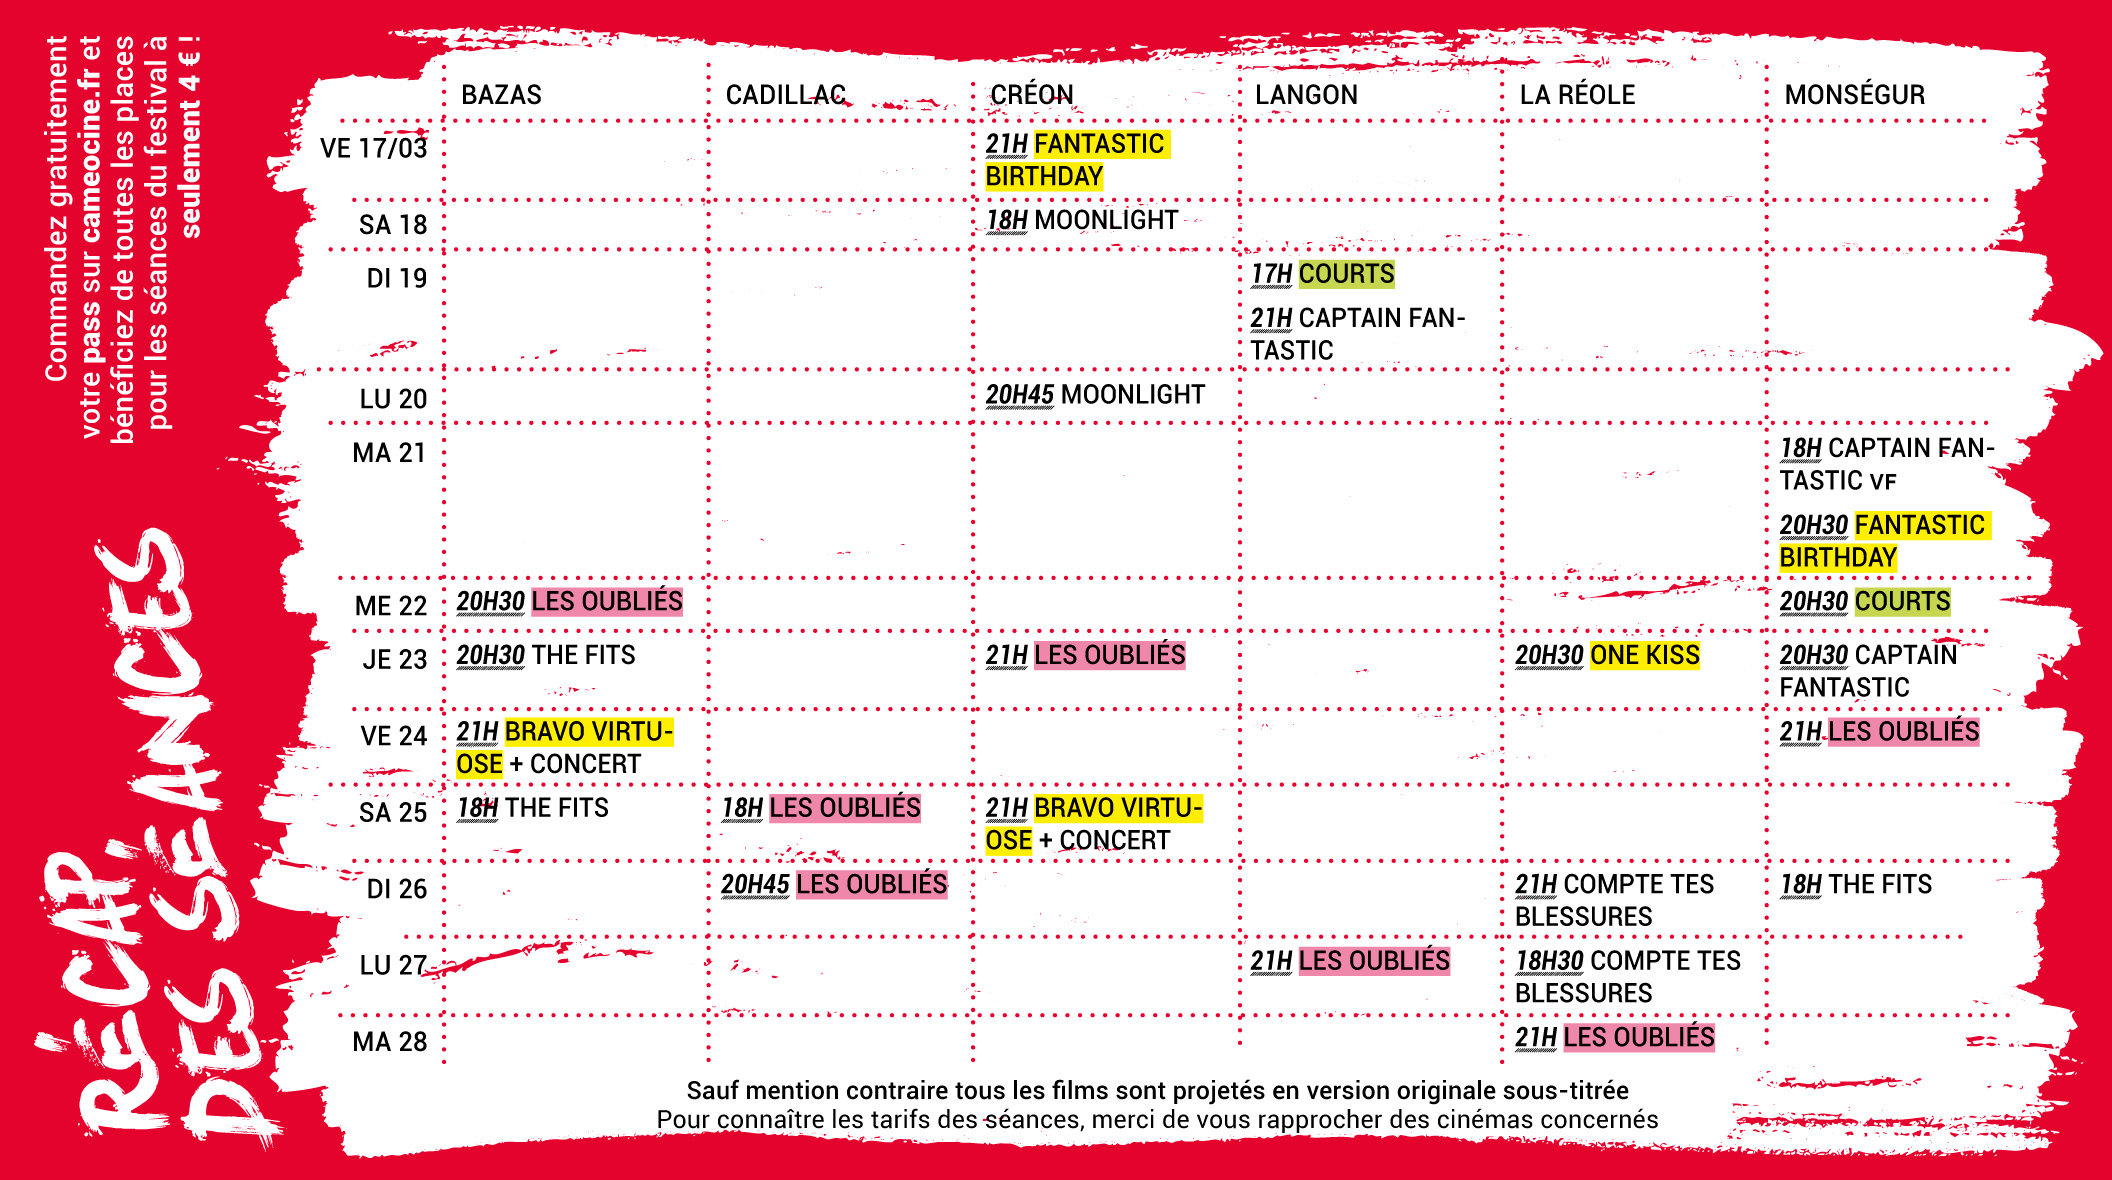 horaires-cameofest1